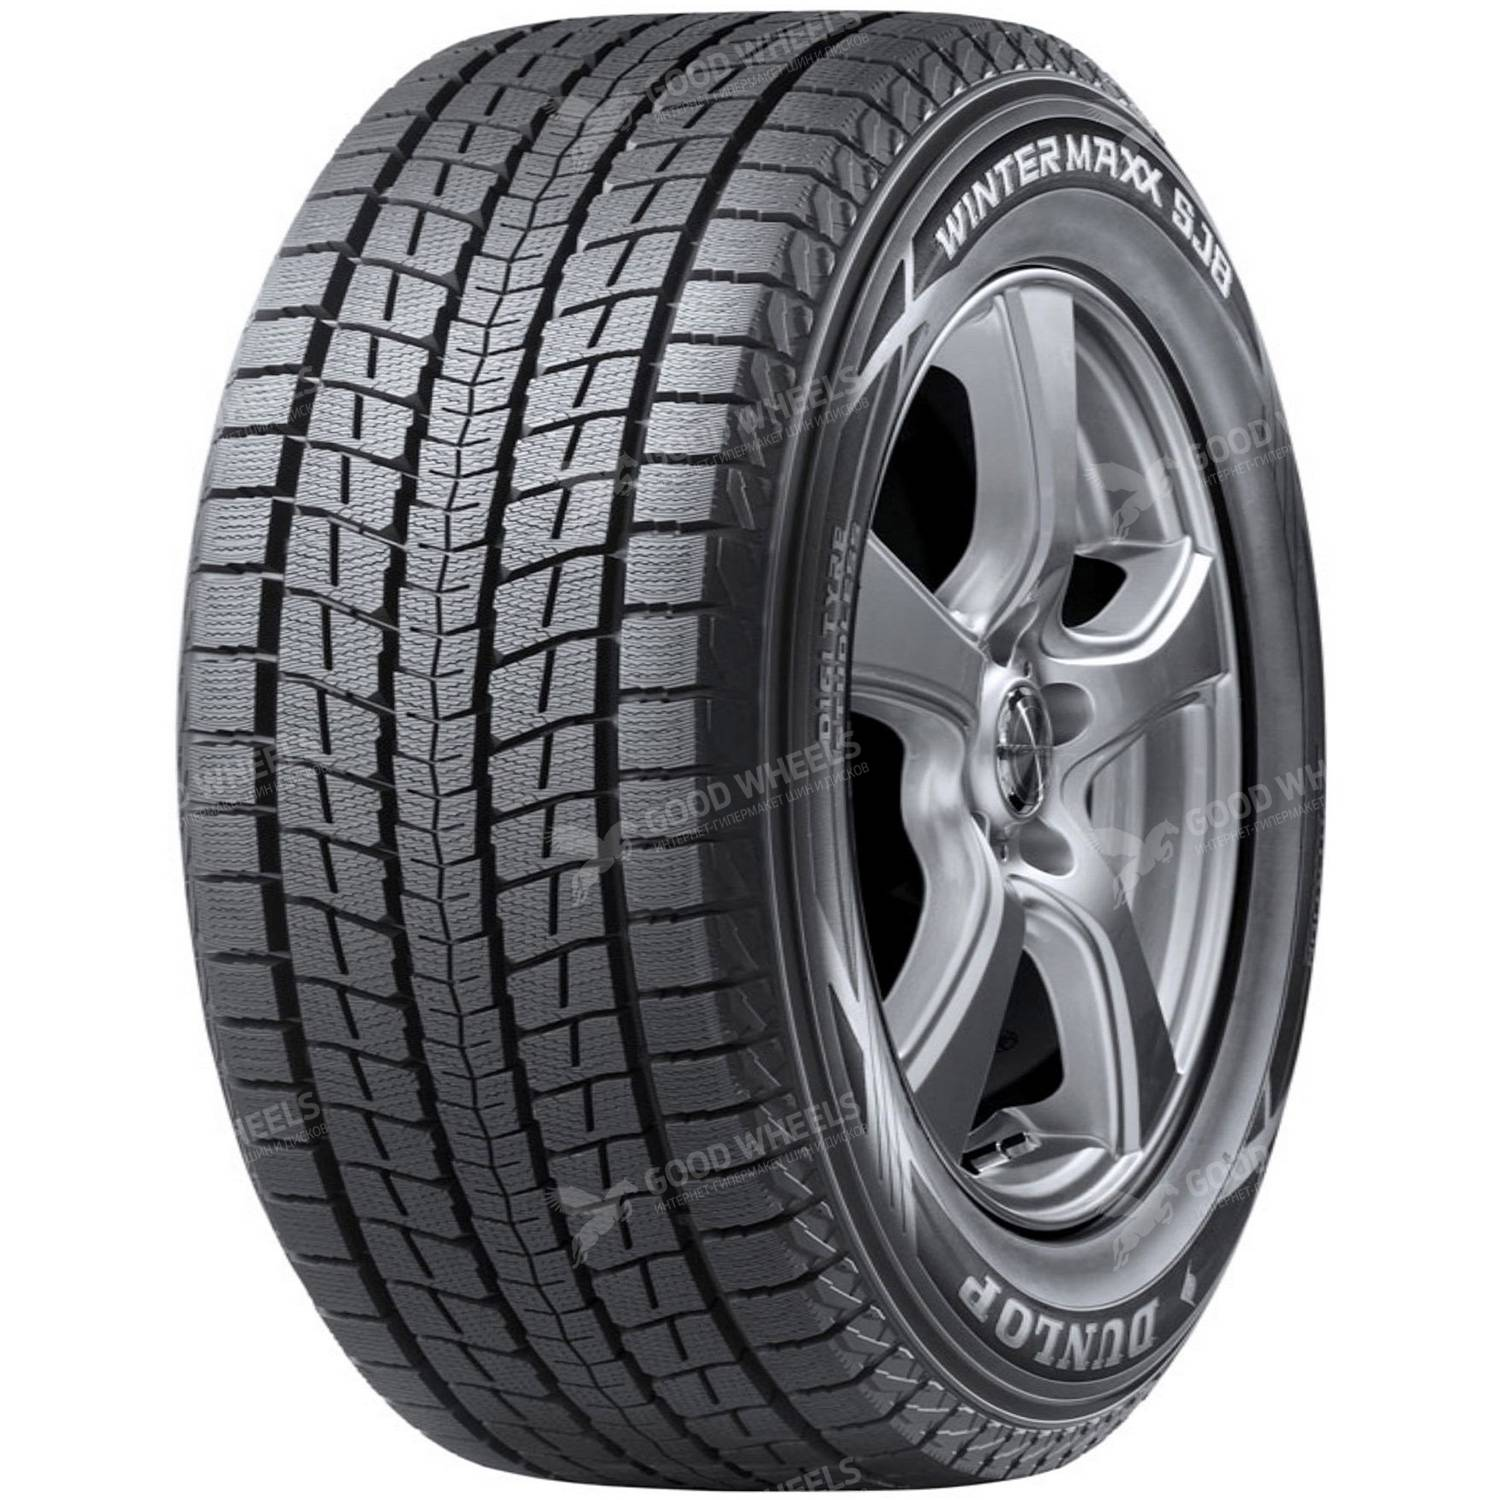 Dunlop Winter Maxx SJ8 275/50 R20 109R